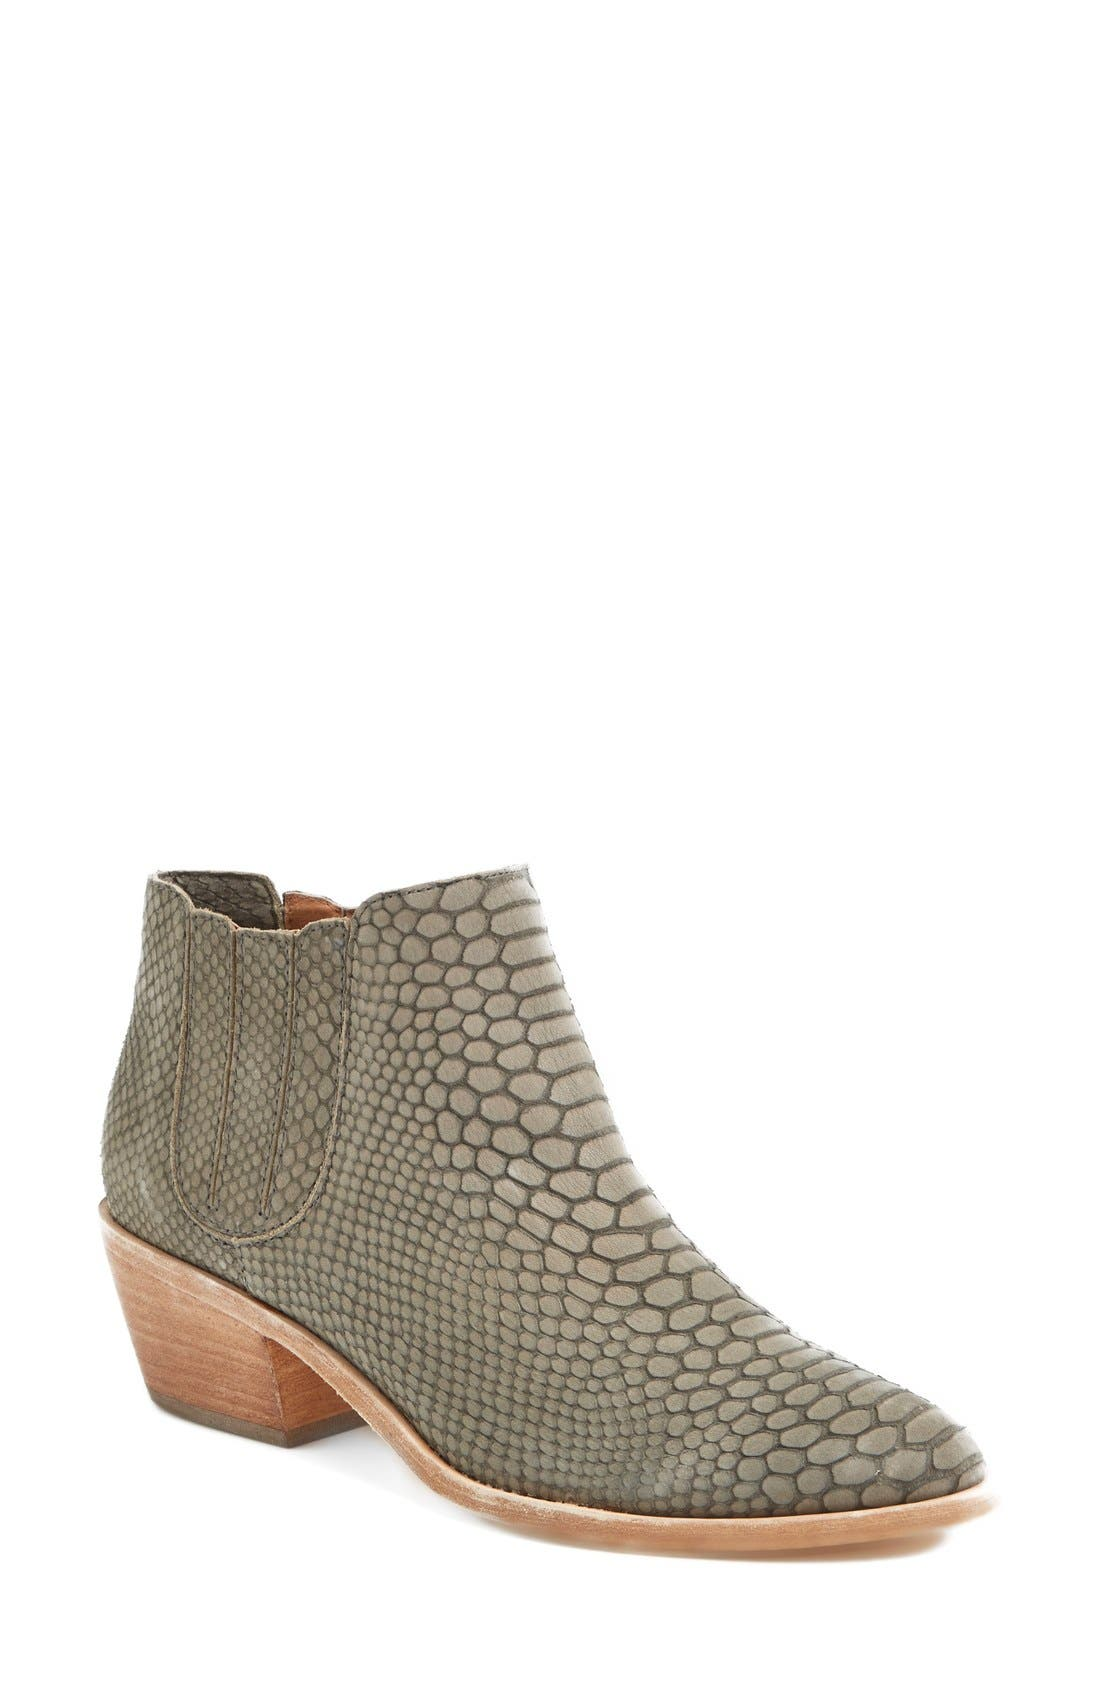 Main Image - Joie 'Barlow' Snake Embossed Leather Bootie (Women)